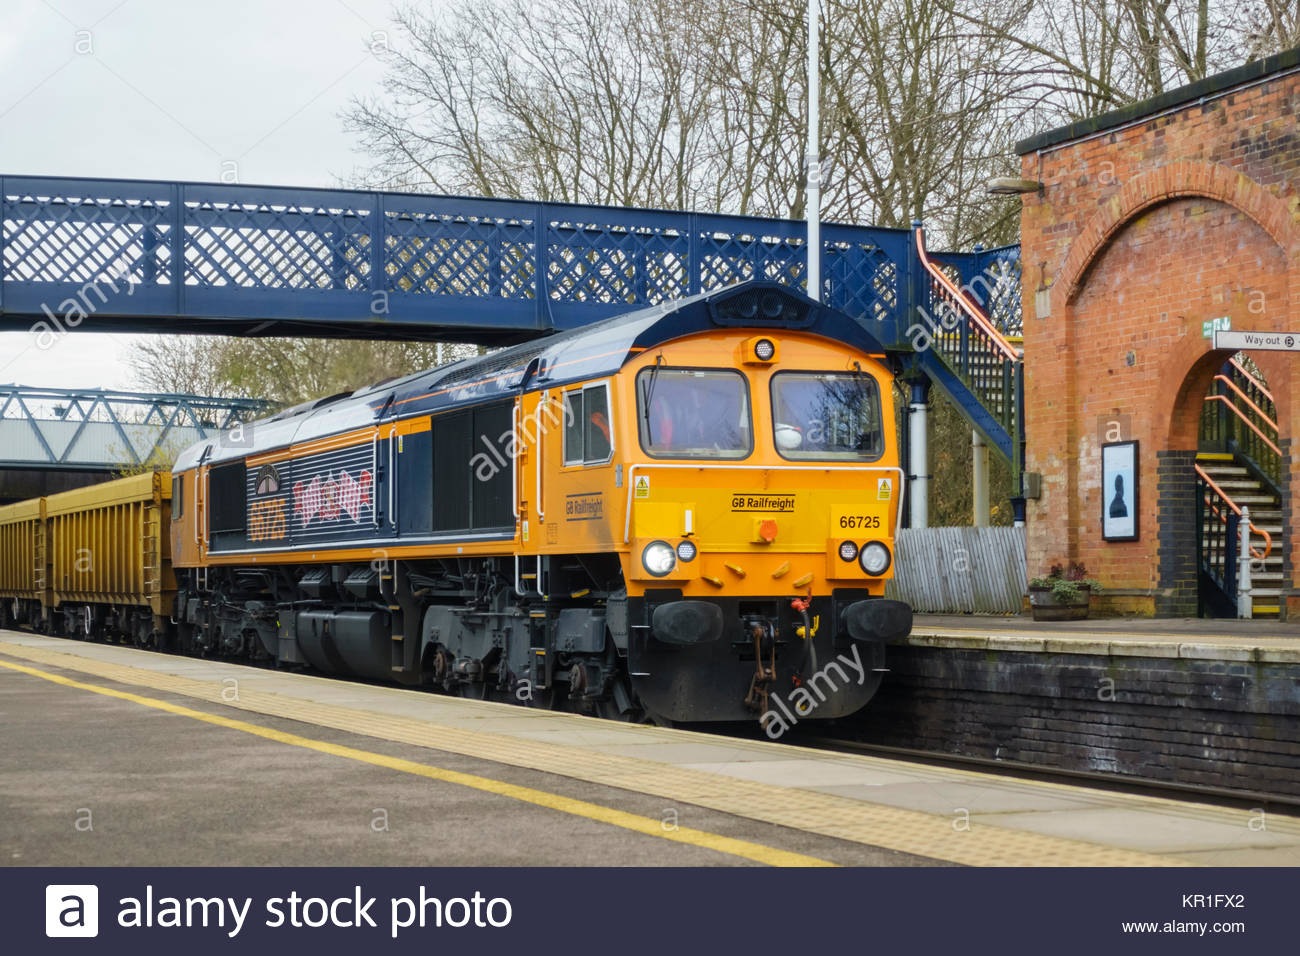 GBRf Freight train Class 66 - 66725 in Sunderland AFC Livery passing through Melton Mowbray - Stock Image